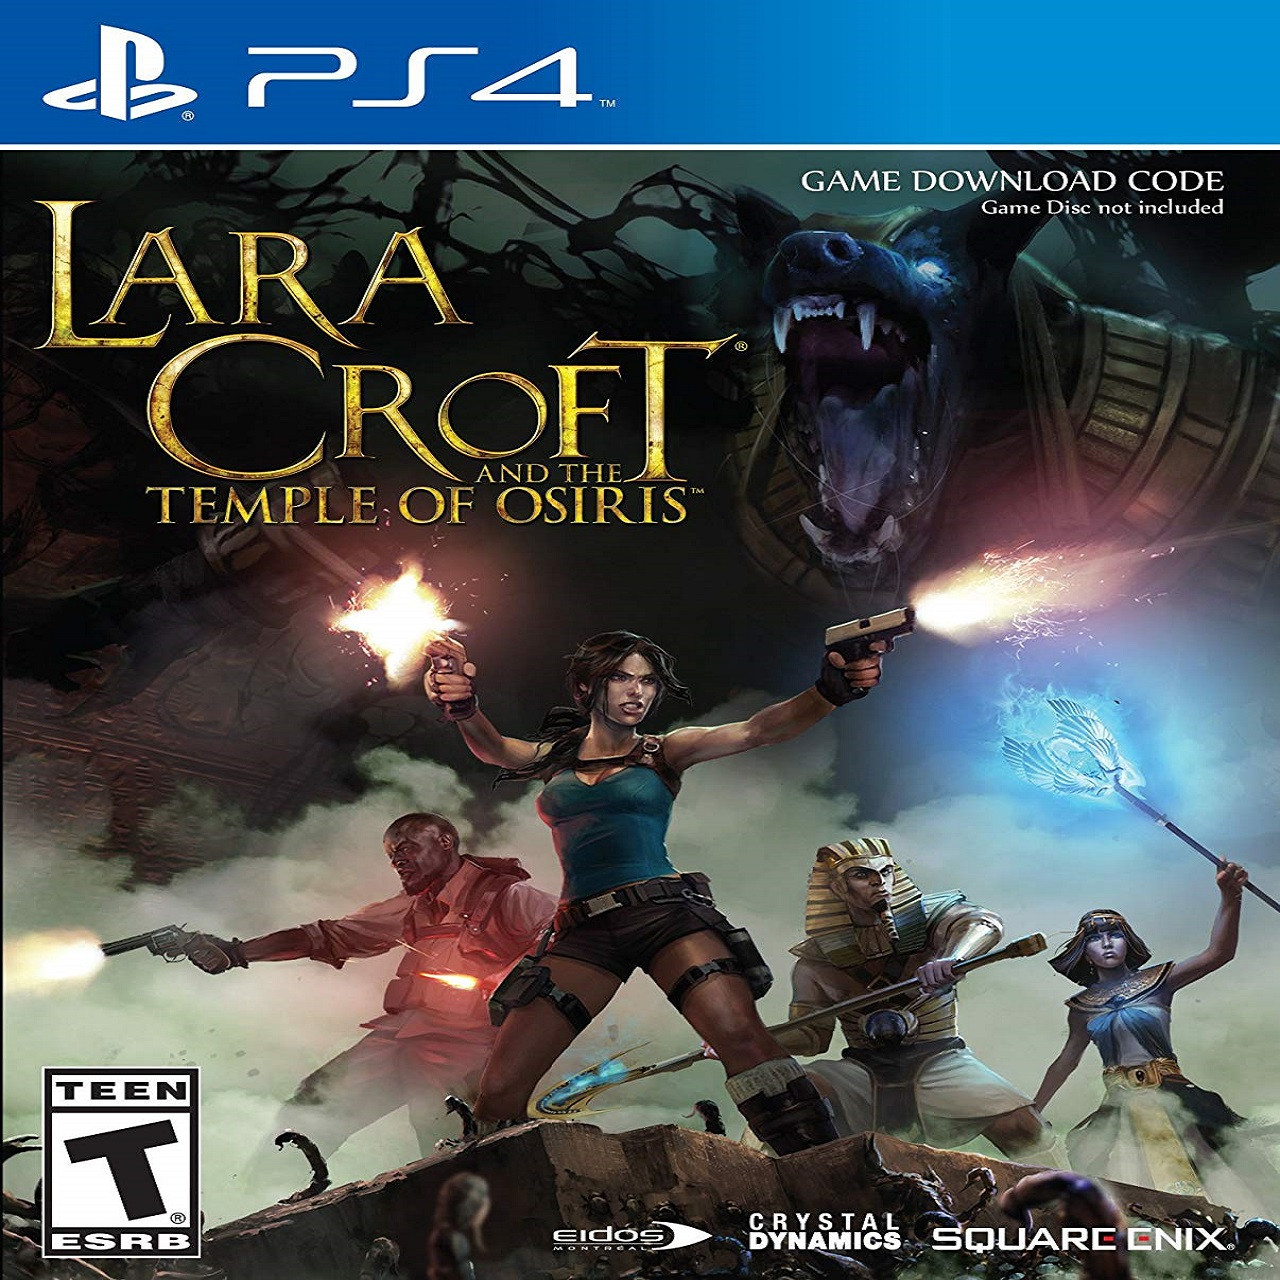 Lara Croft and the Temple of Osiris RUS